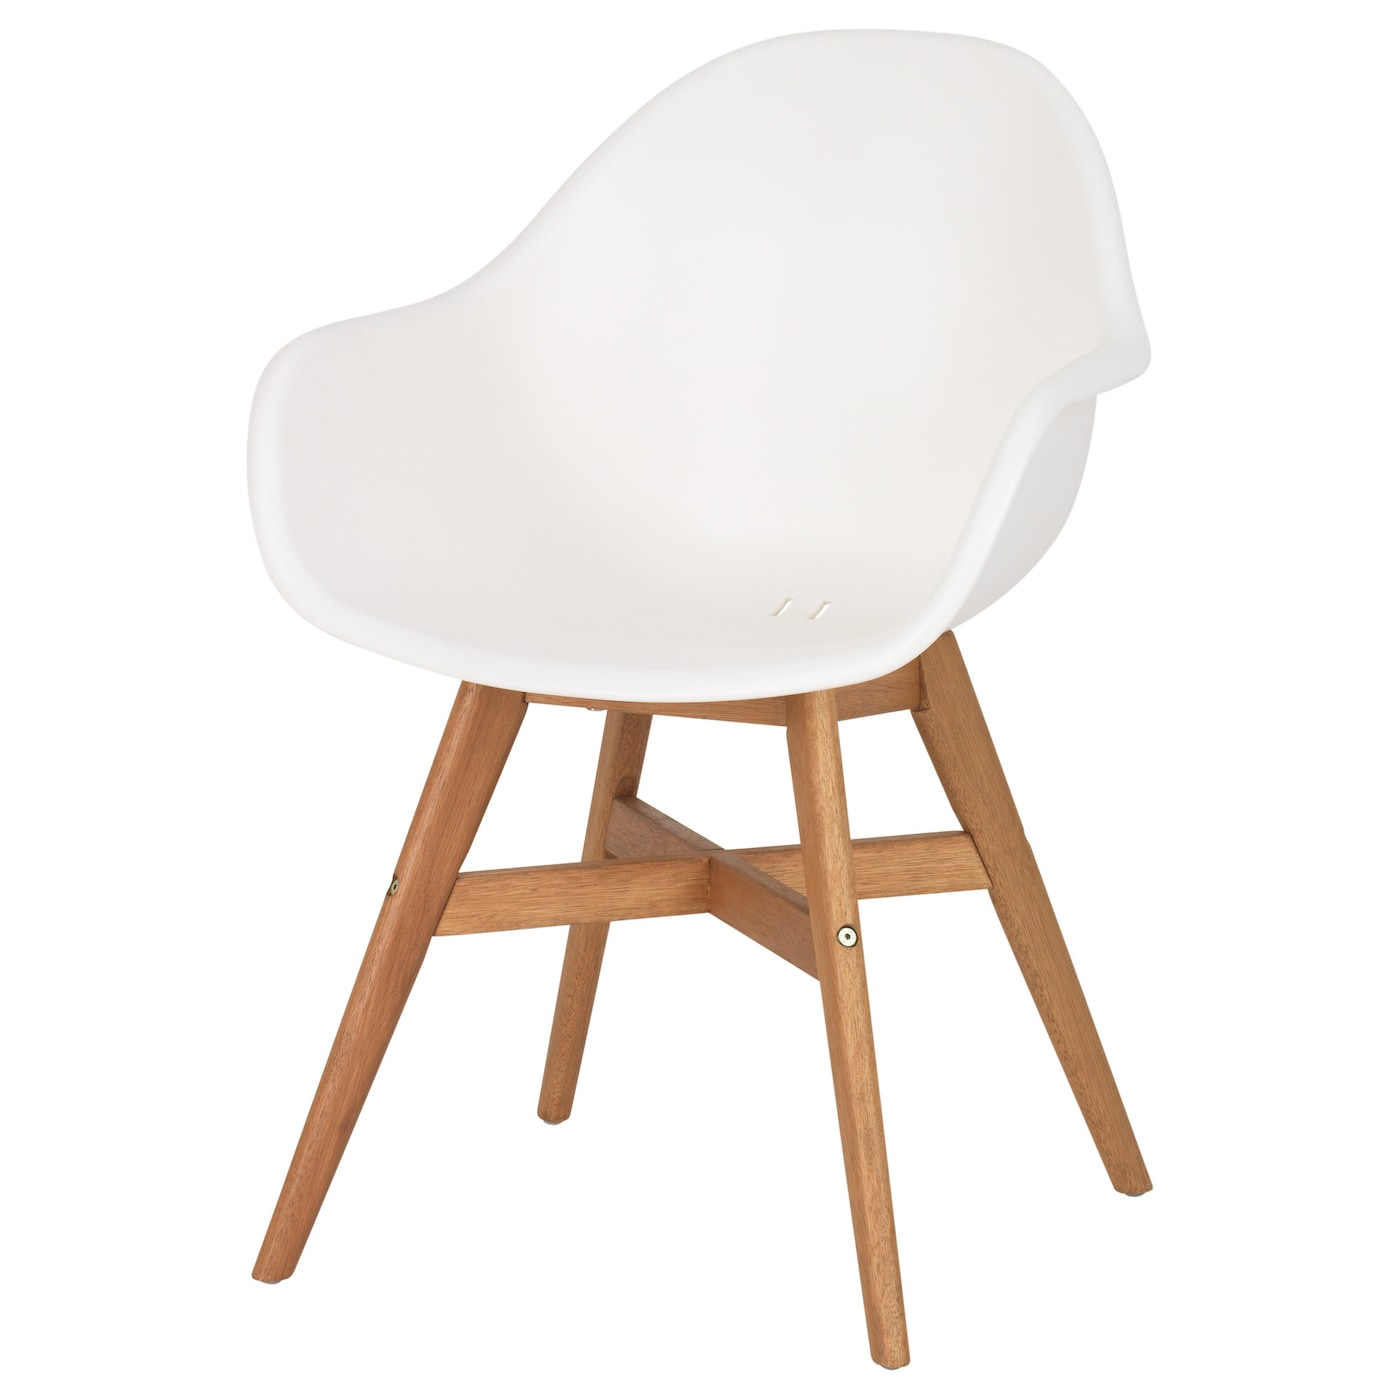 IKEA FANBYN chair with armrests You sit comfortably thanks to the shaped back and armrests.